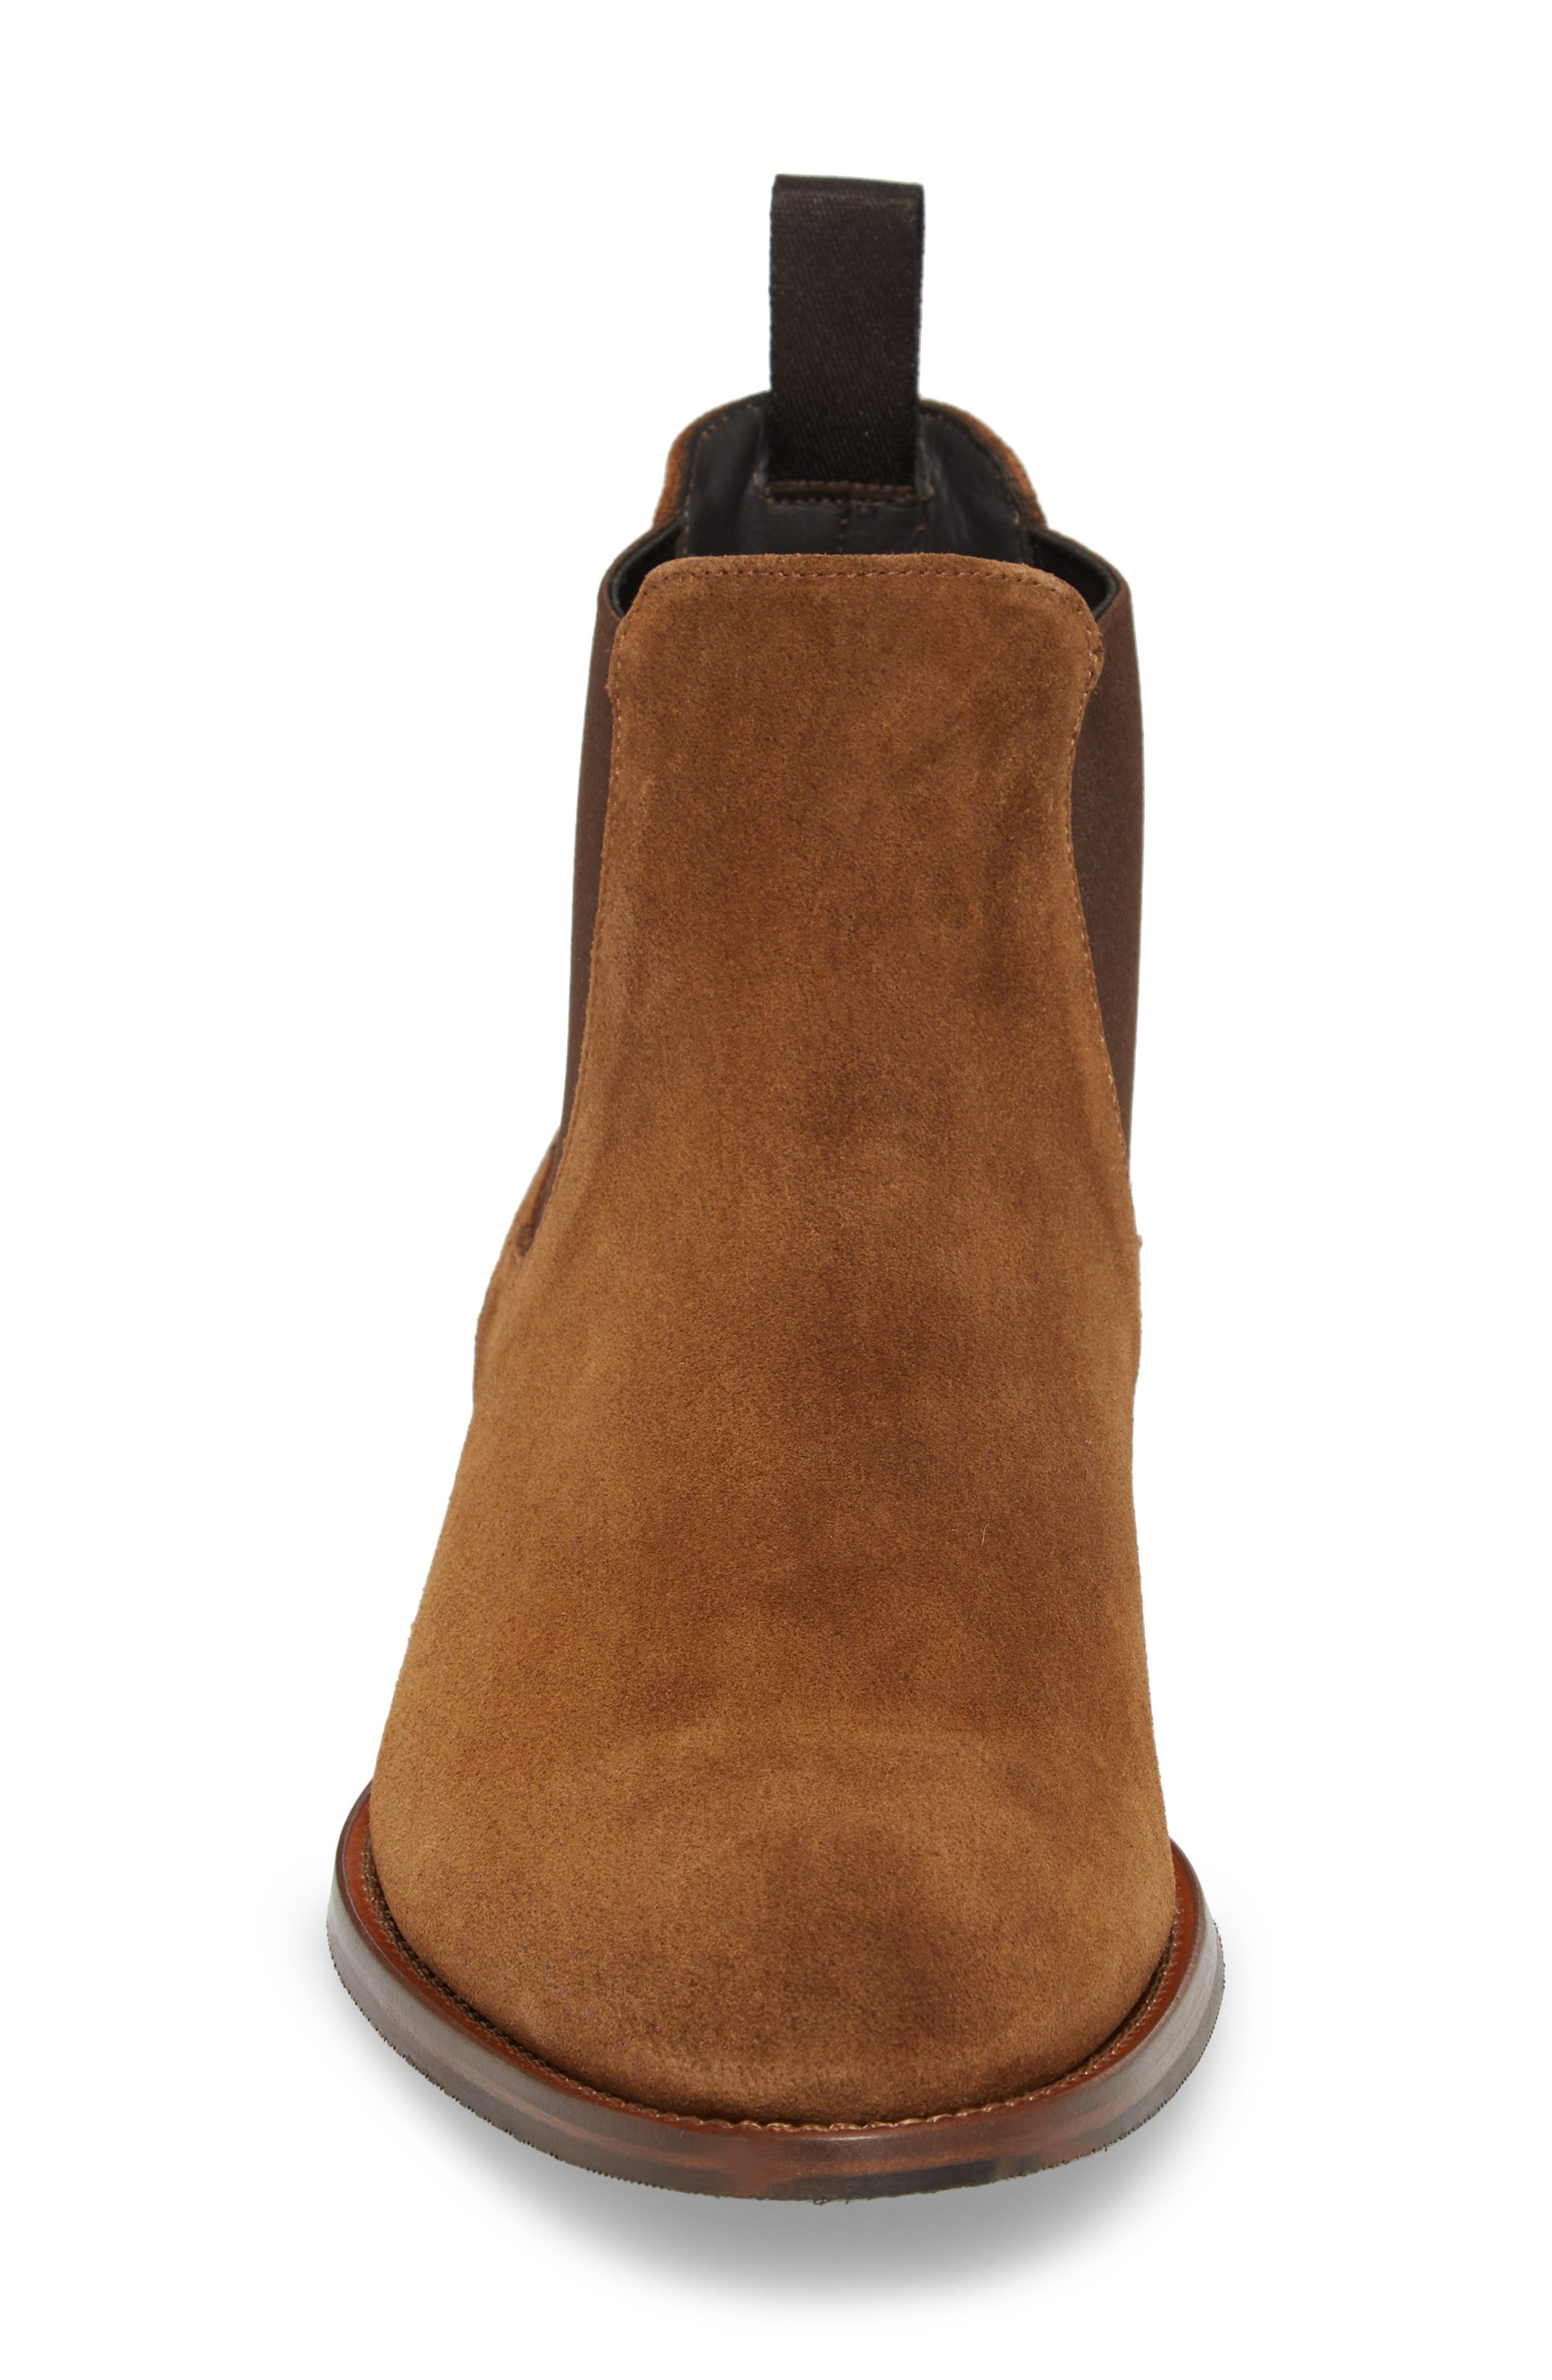 TO BOOT NEW YORK, Shelby Mid Chelsea Boot, Alternate thumbnail 4, color, MID BROWN SUEDE